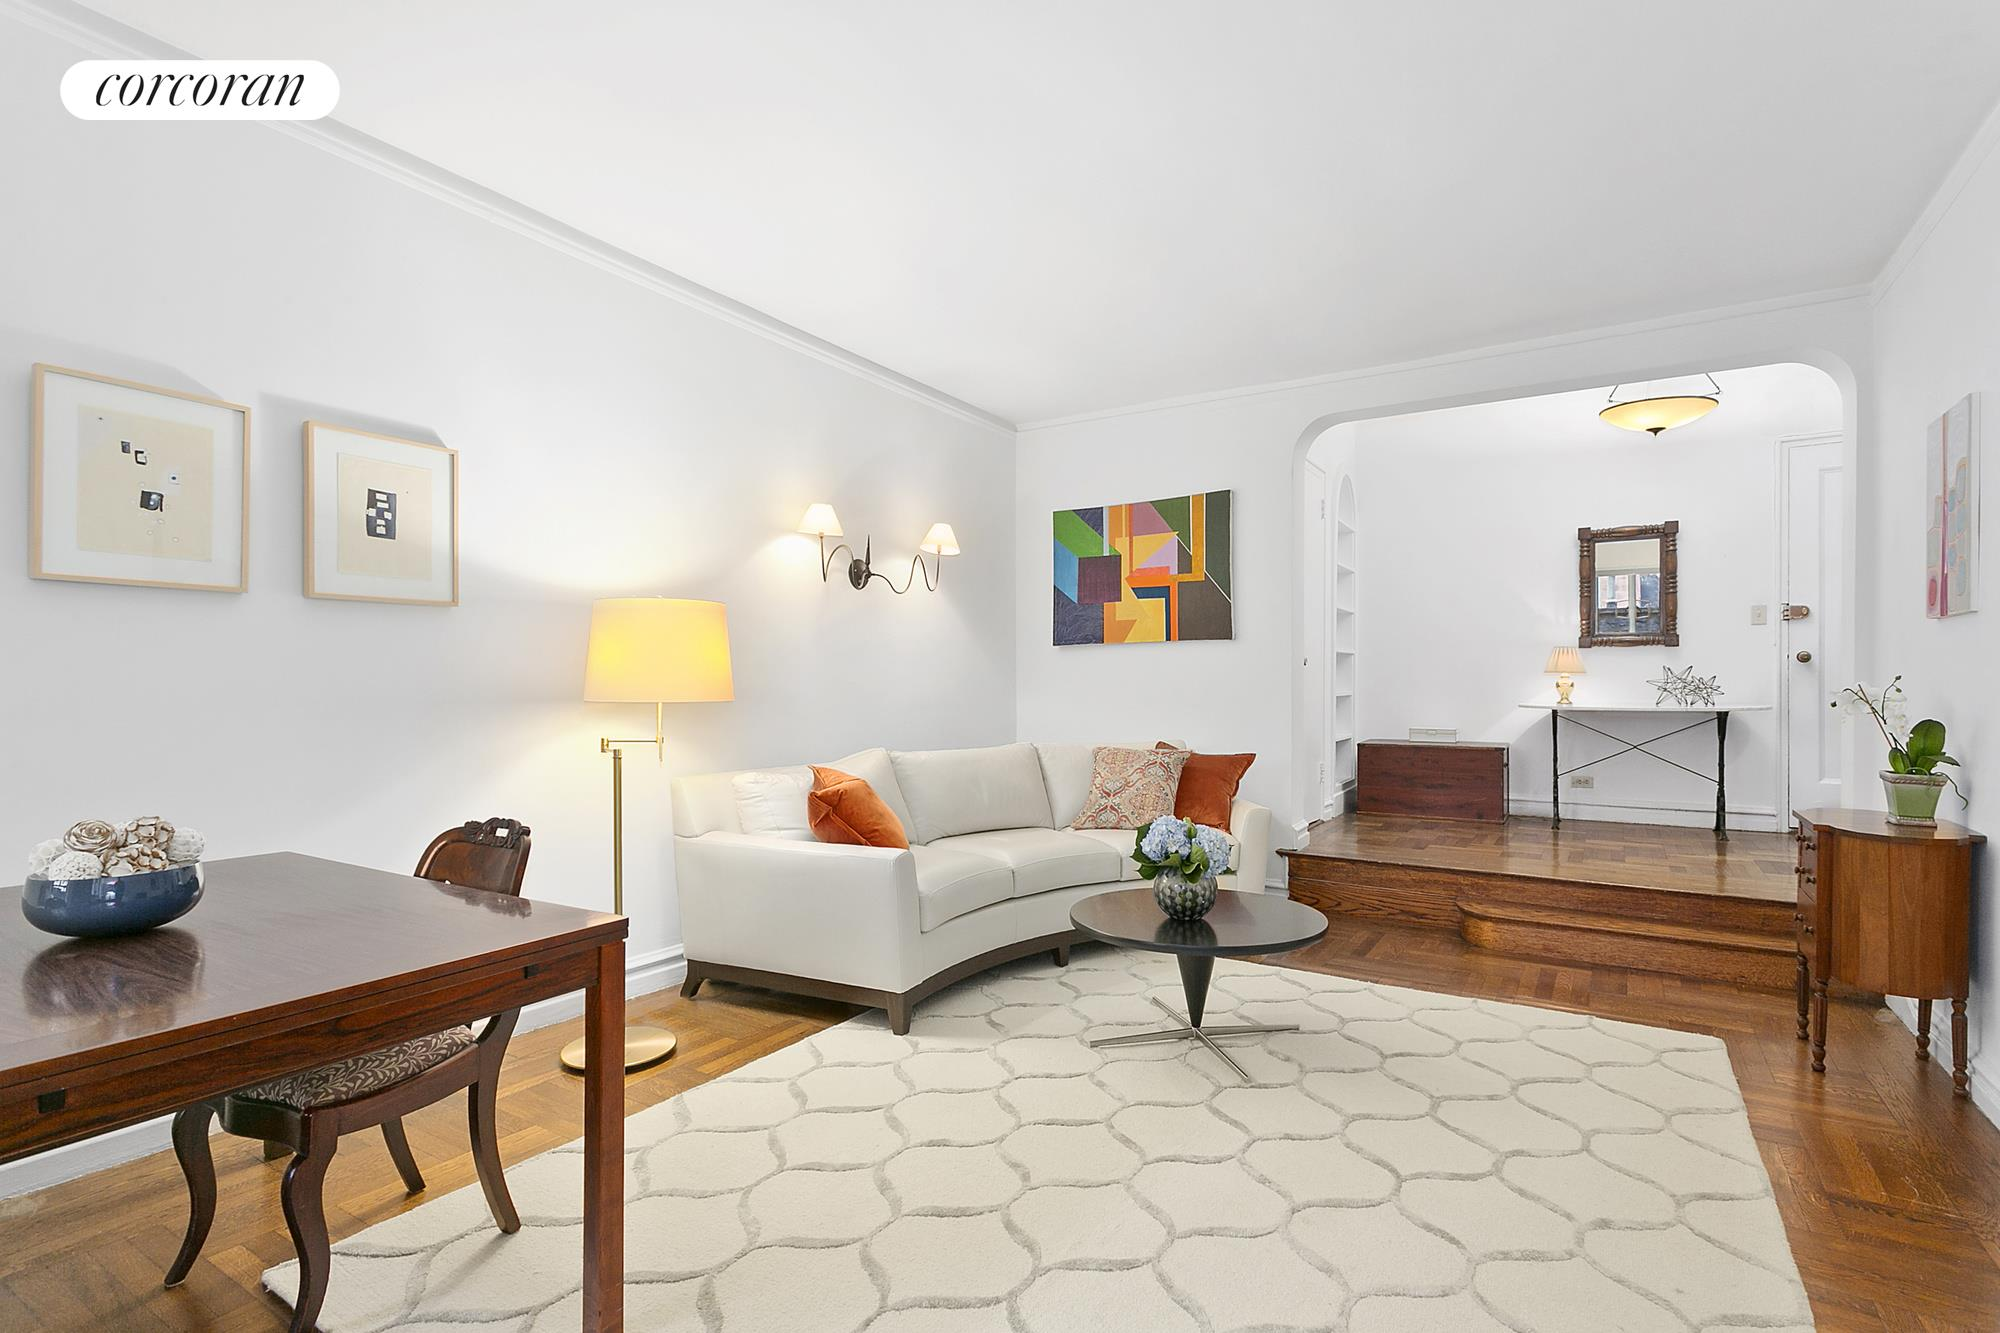 Corcoran, 155 West 20th Street, Apt. 3B, Chelsea/Hudson Yards Real ...